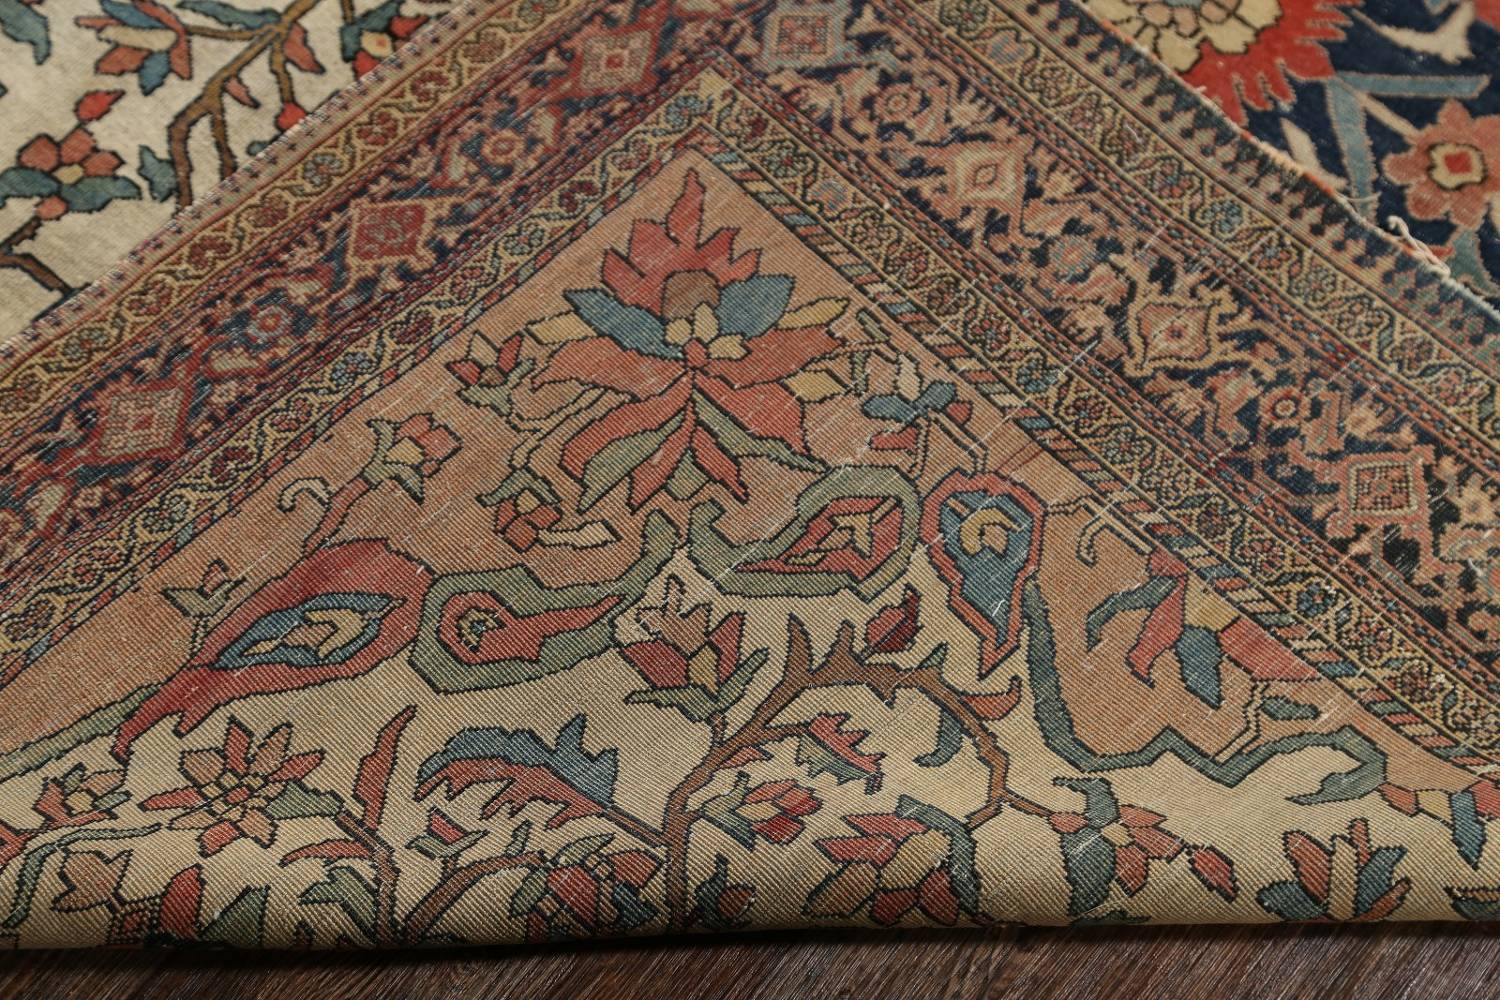 Pre-1900 Antique Floral Sarouk Farahan Persian Hand-Knotted 4'x7' Wool Area Rug image 22